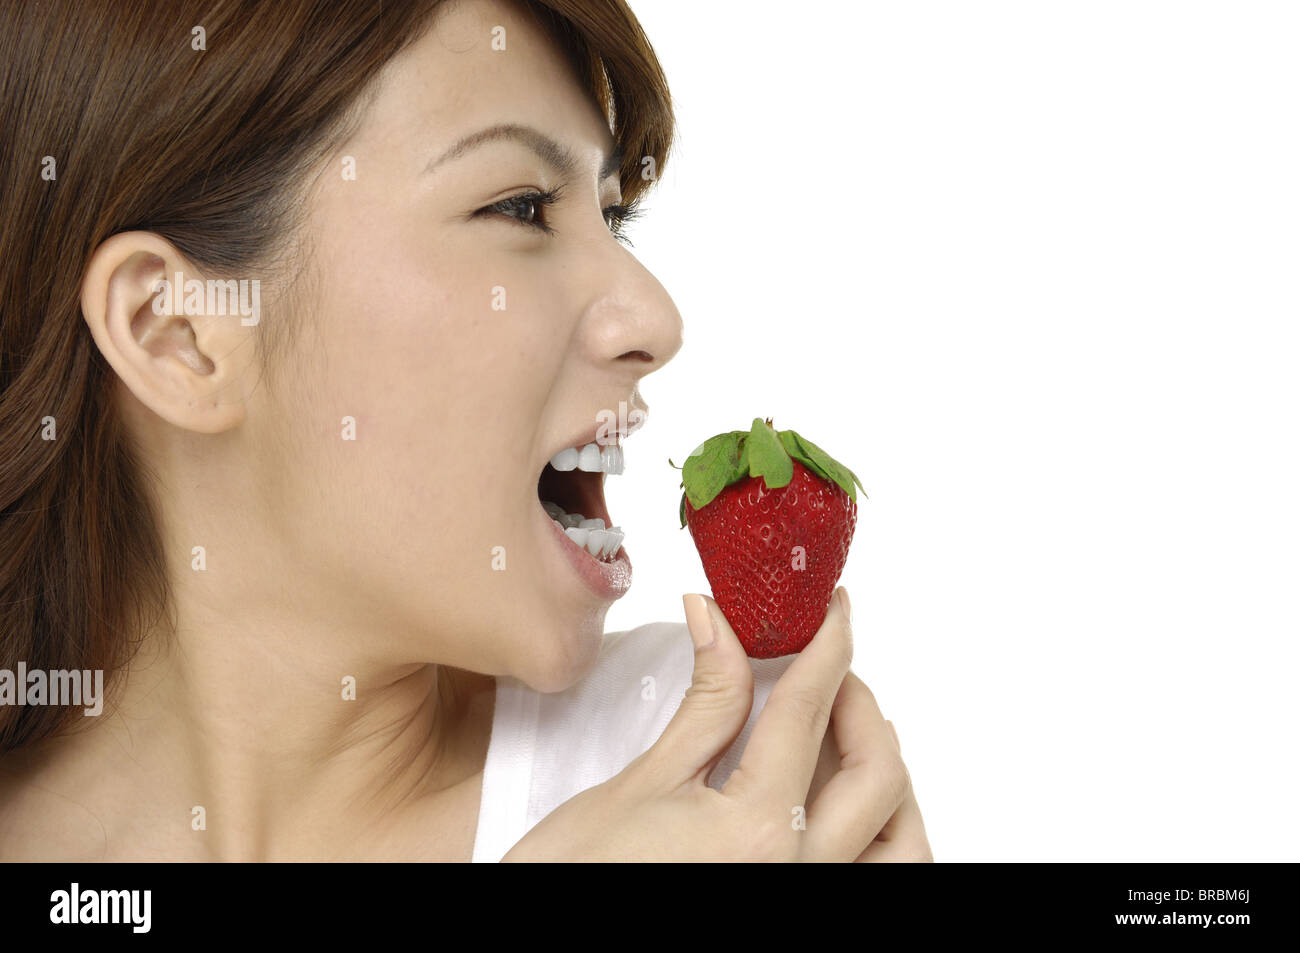 Portrait d'une belle femme asiatique avec strawberry Photo Stock